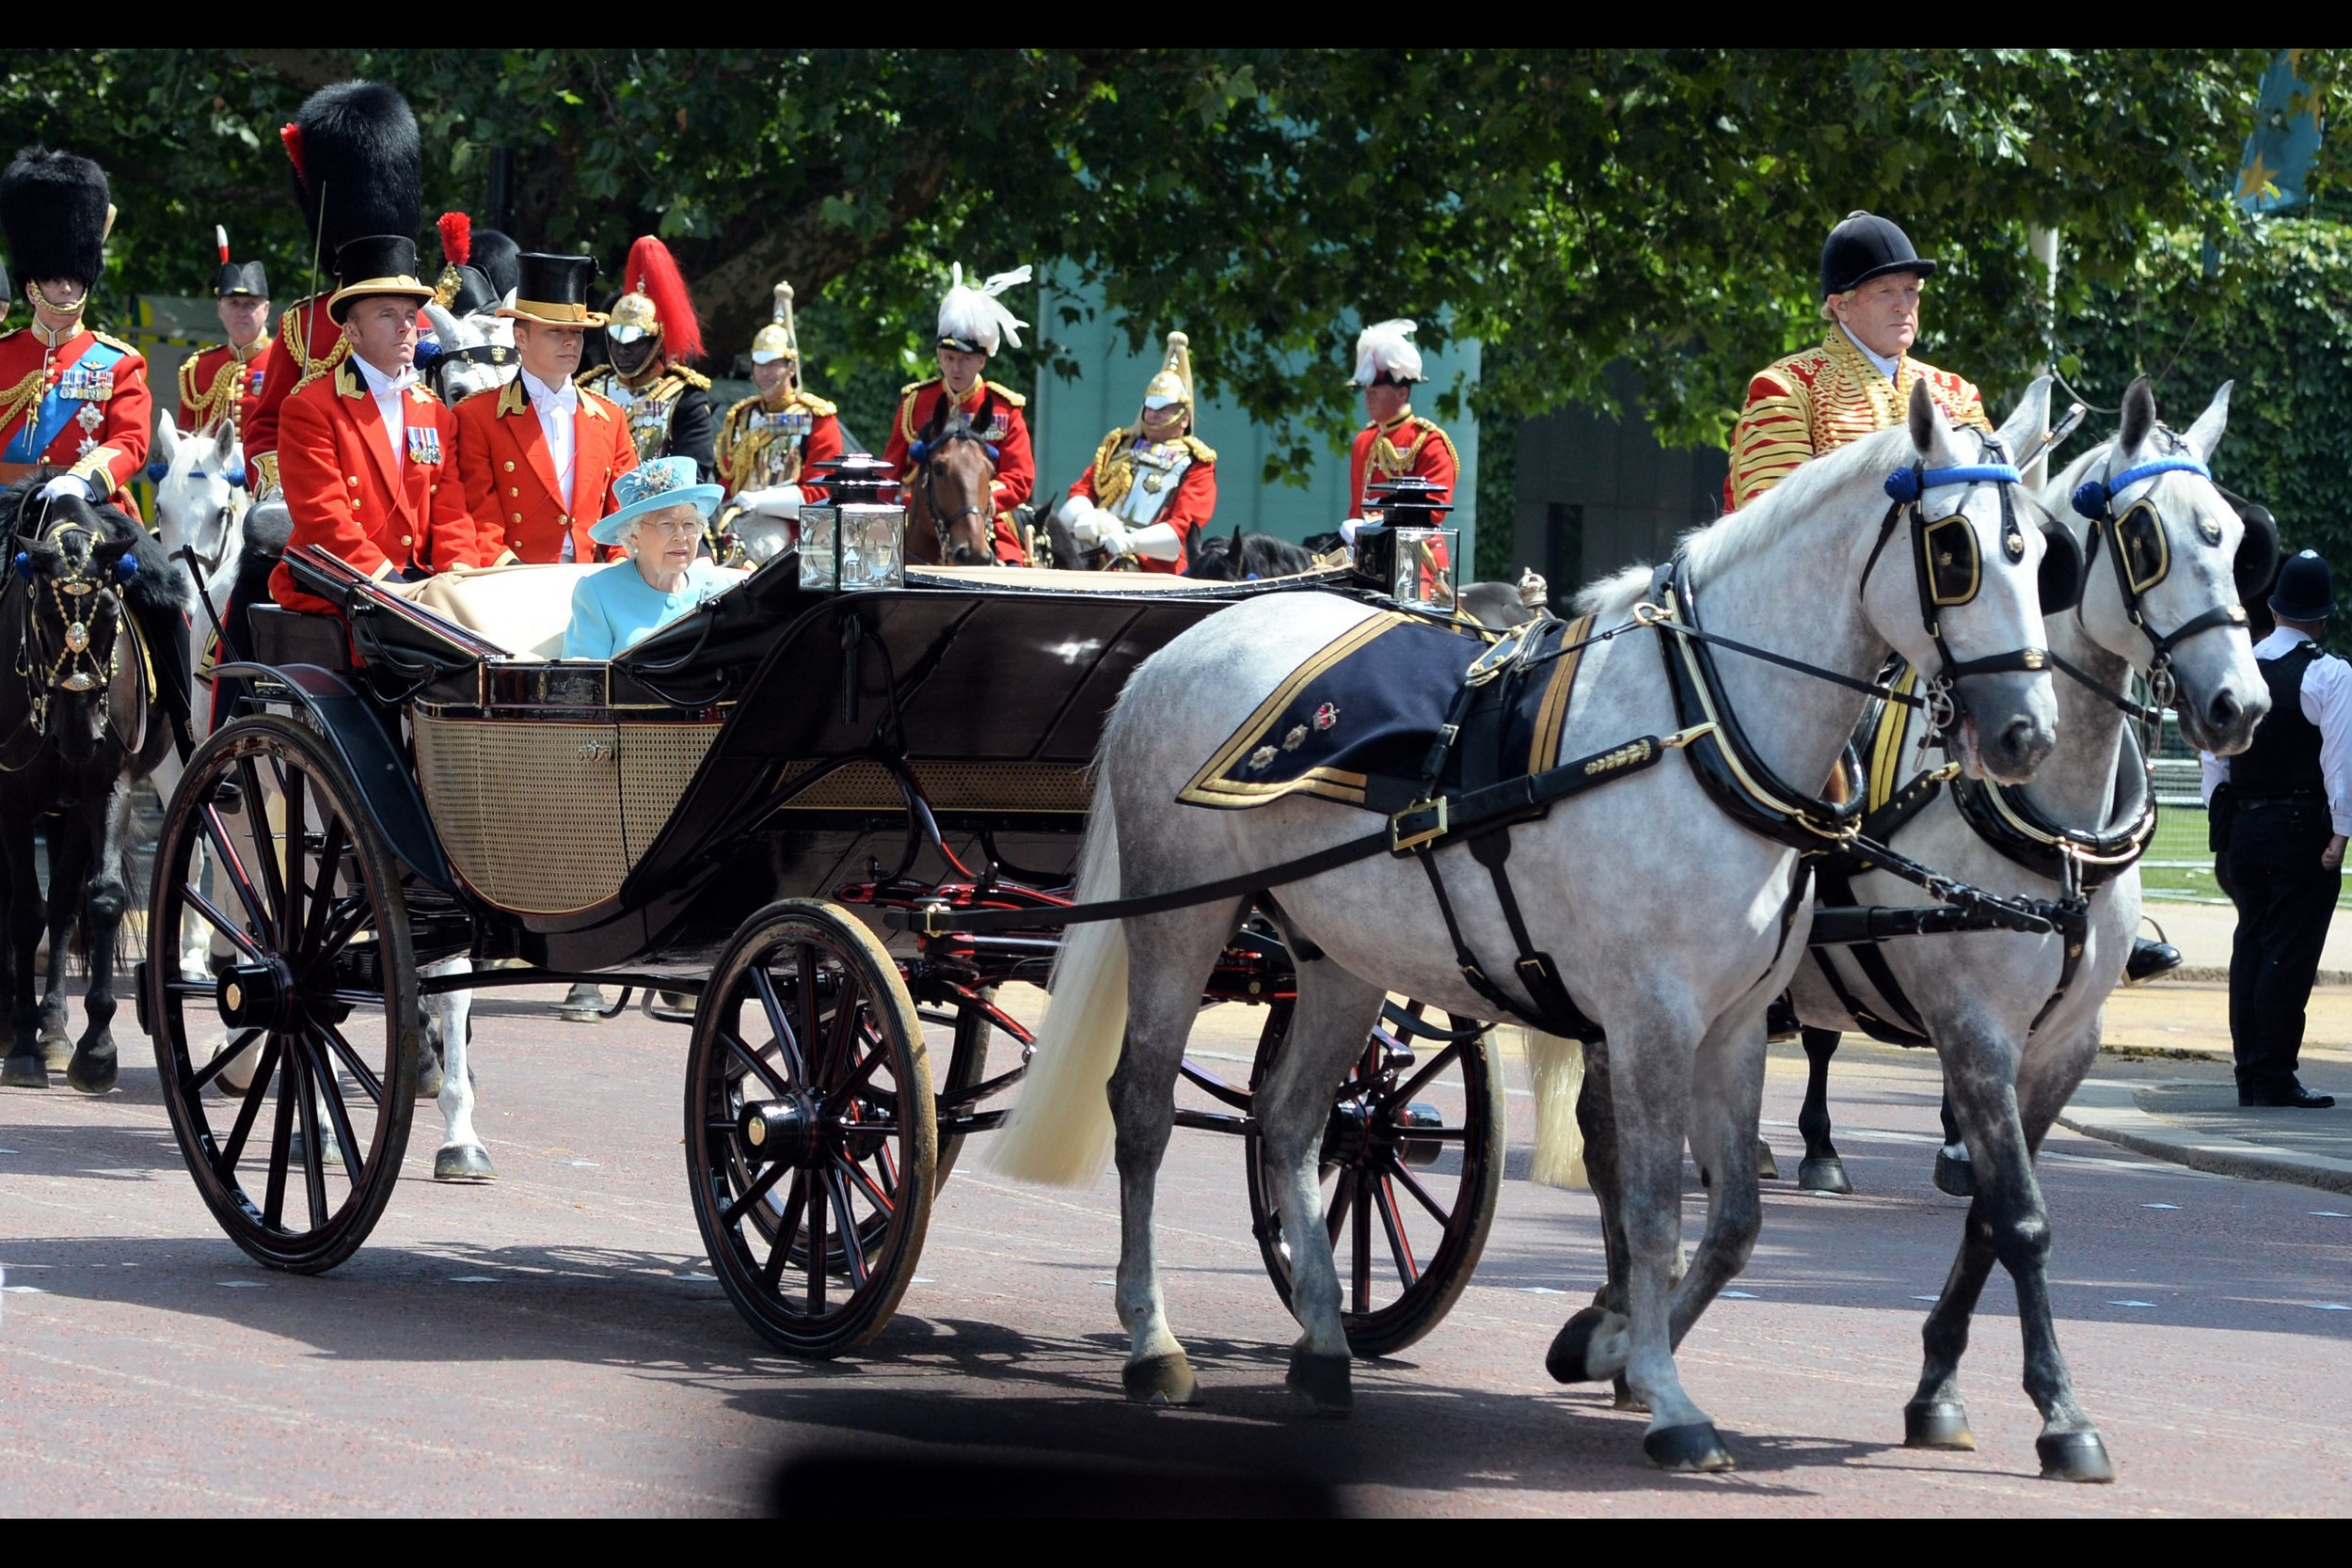 Everyone else having gotten the f'' out of the way, The Queen makes her return to Buck House